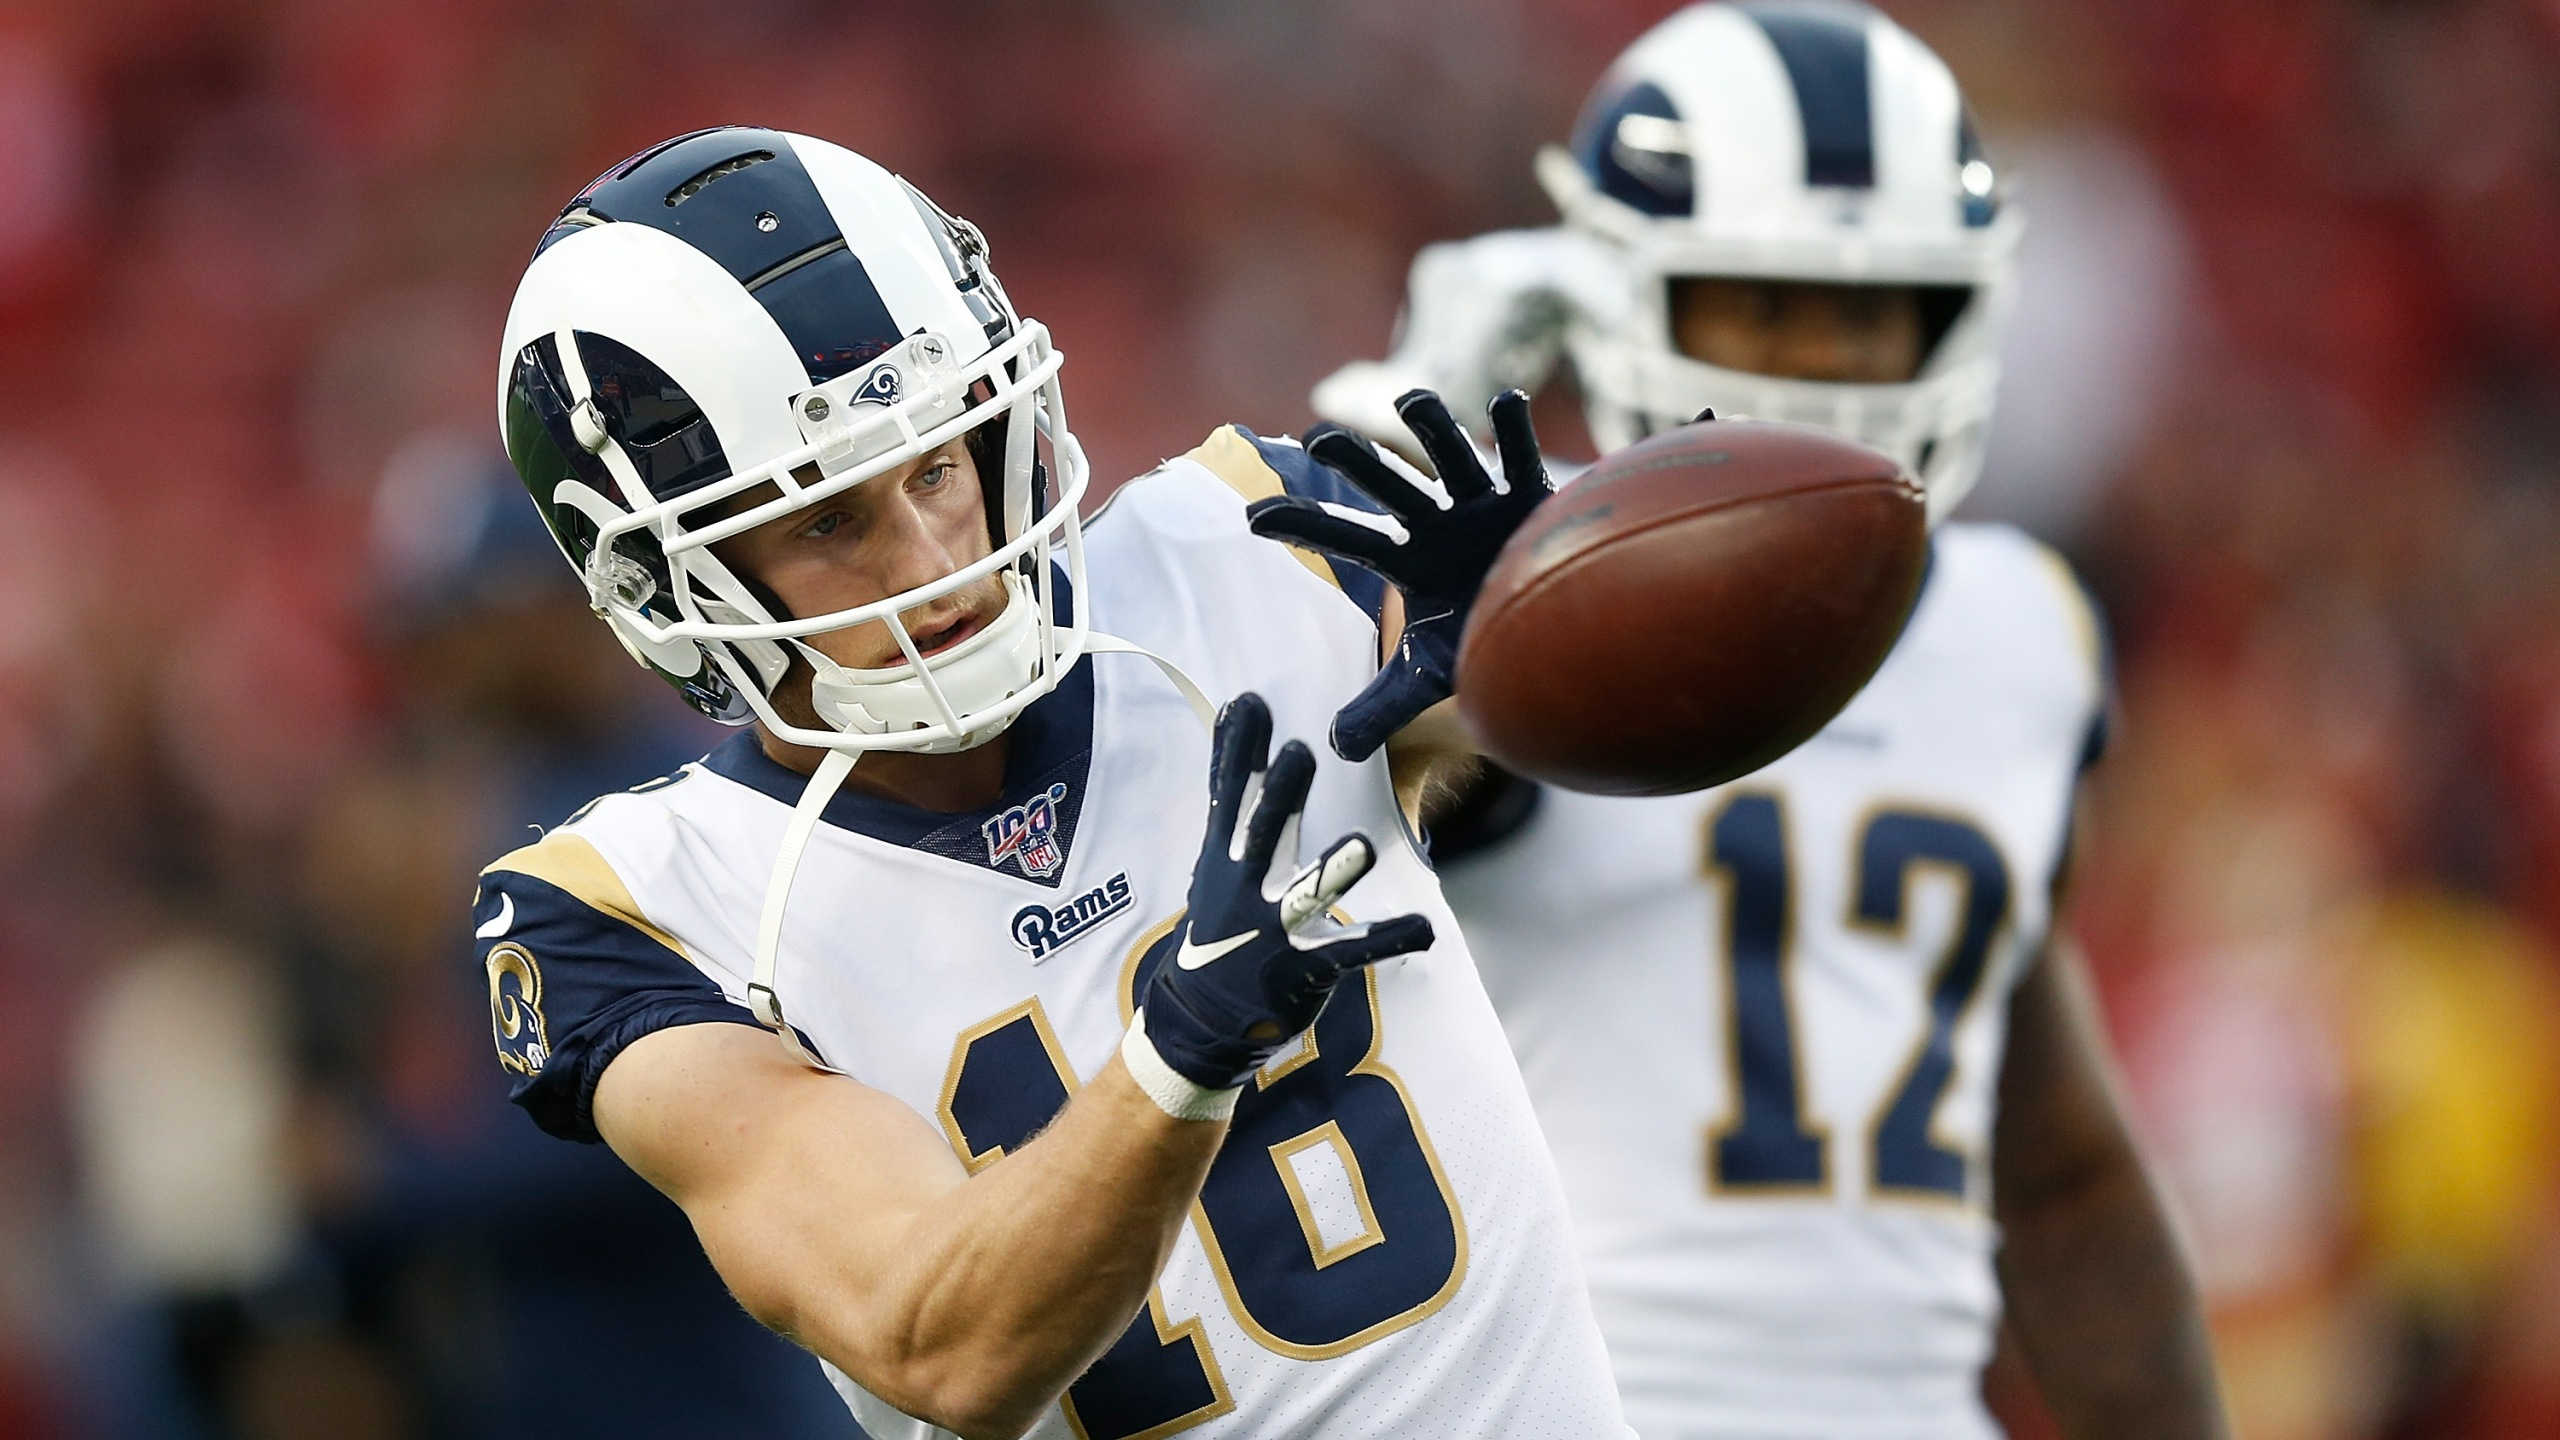 Cooper Kupp of the Los Angeles Rams warms up before the game against the San Francisco 49ers at Levi's Stadium on Dec. 21, 2019 in Santa Clara. (Credit: Lachlan Cunningham/Getty Images)